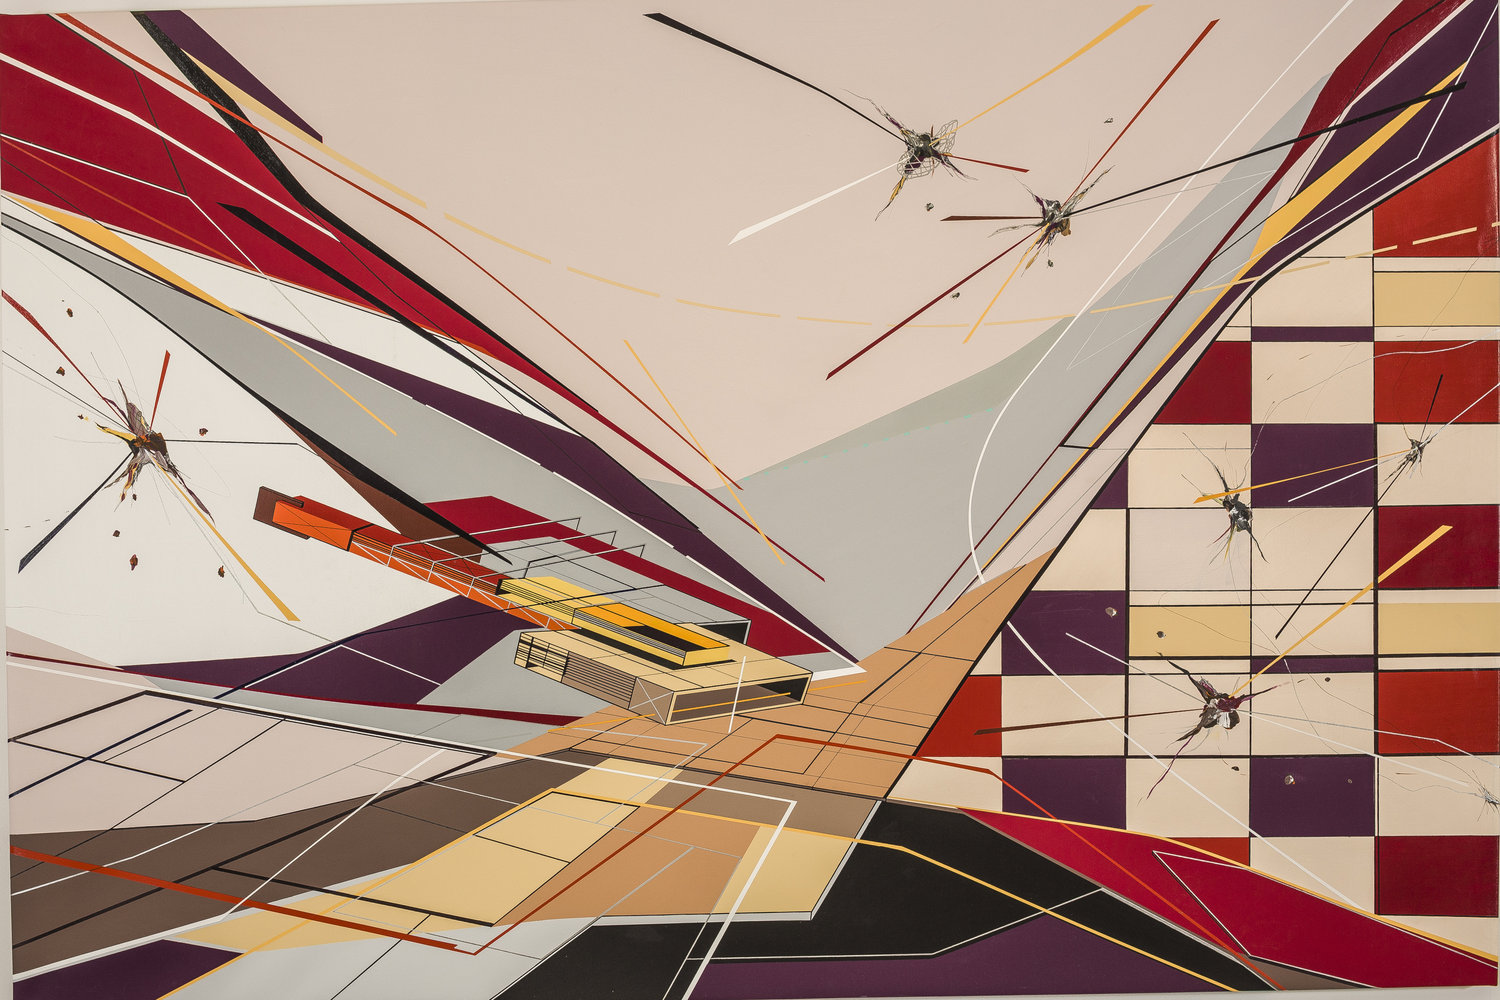 Auction Preview: Anibal Catalan, Morphological zone (Supremat III), acrylic on canvas, 47 x 70 inches